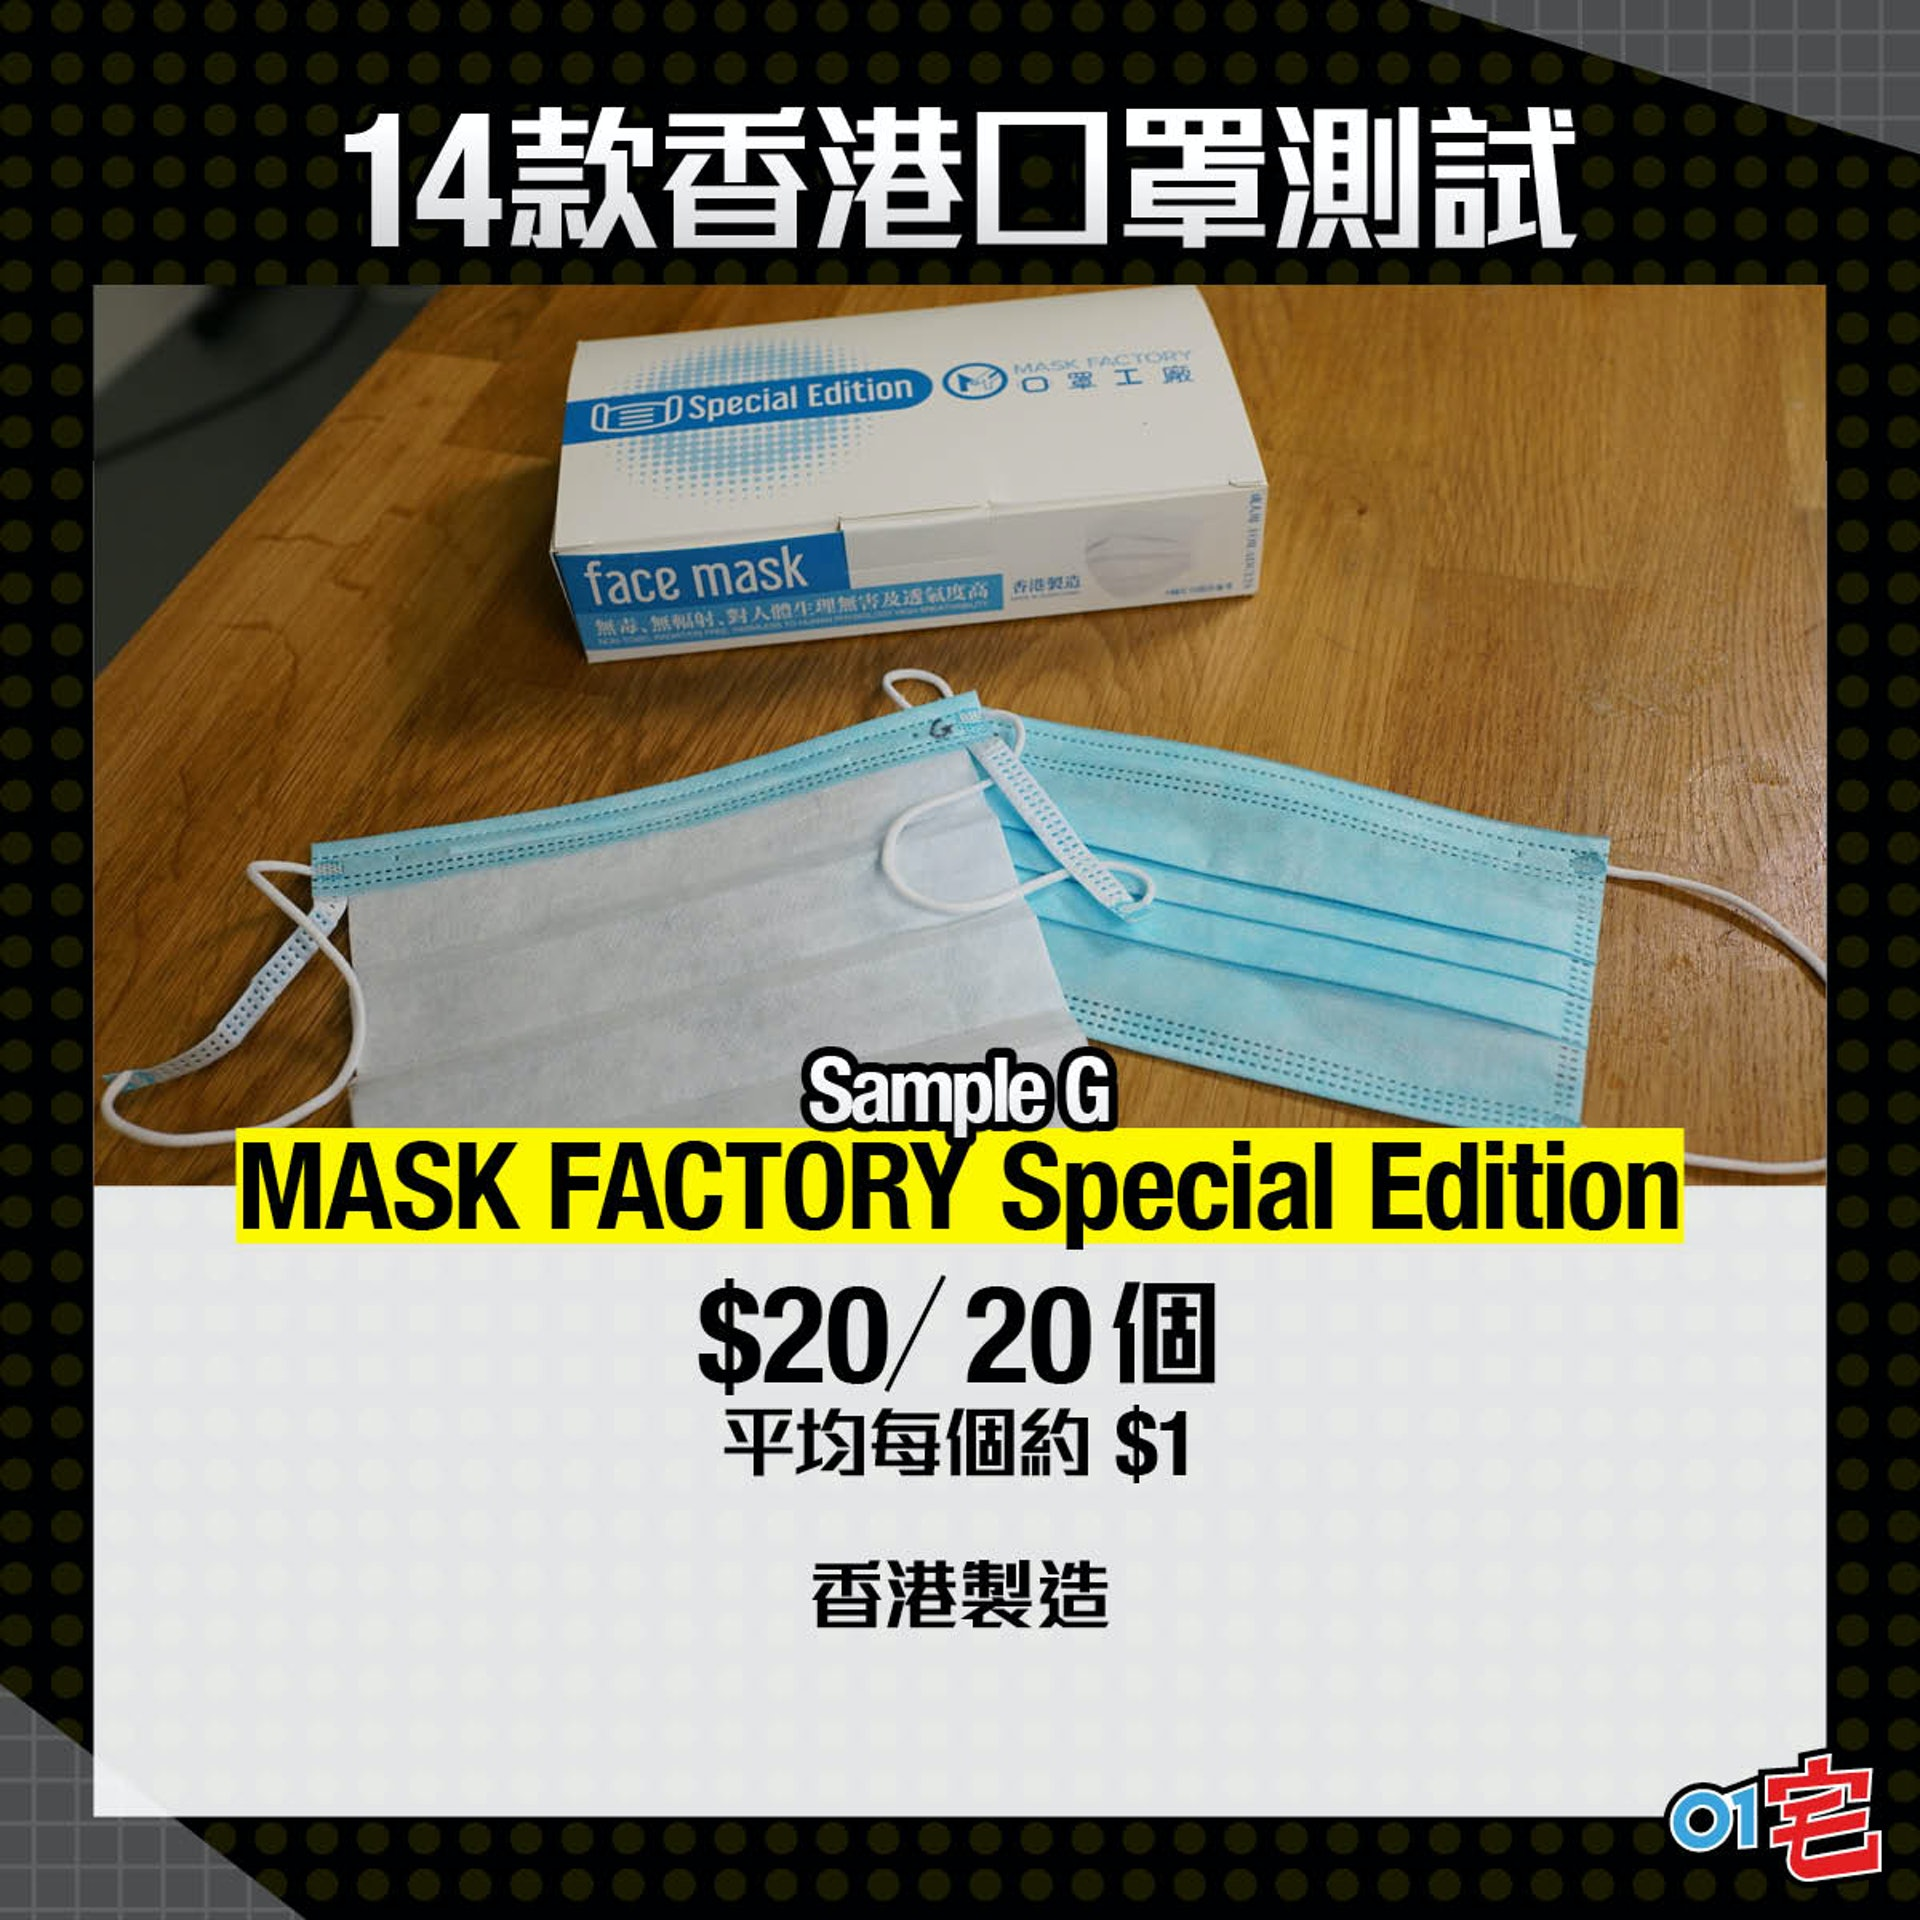 MASK FACTORY Special Edition